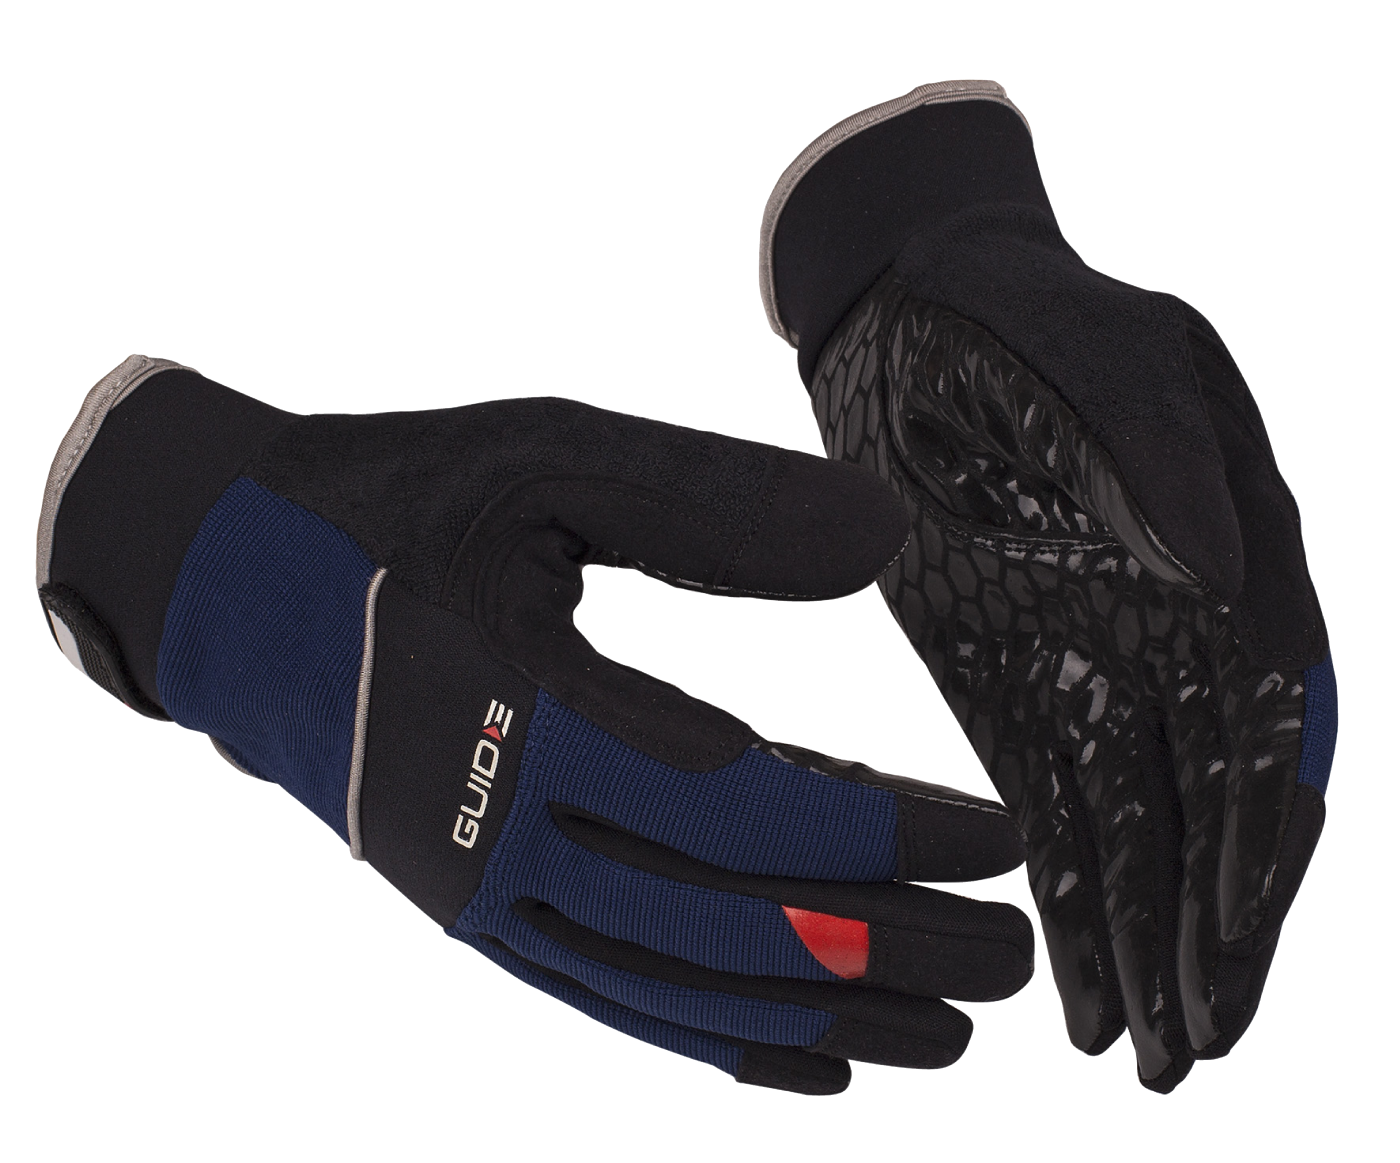 Working Glove GUIDE 4